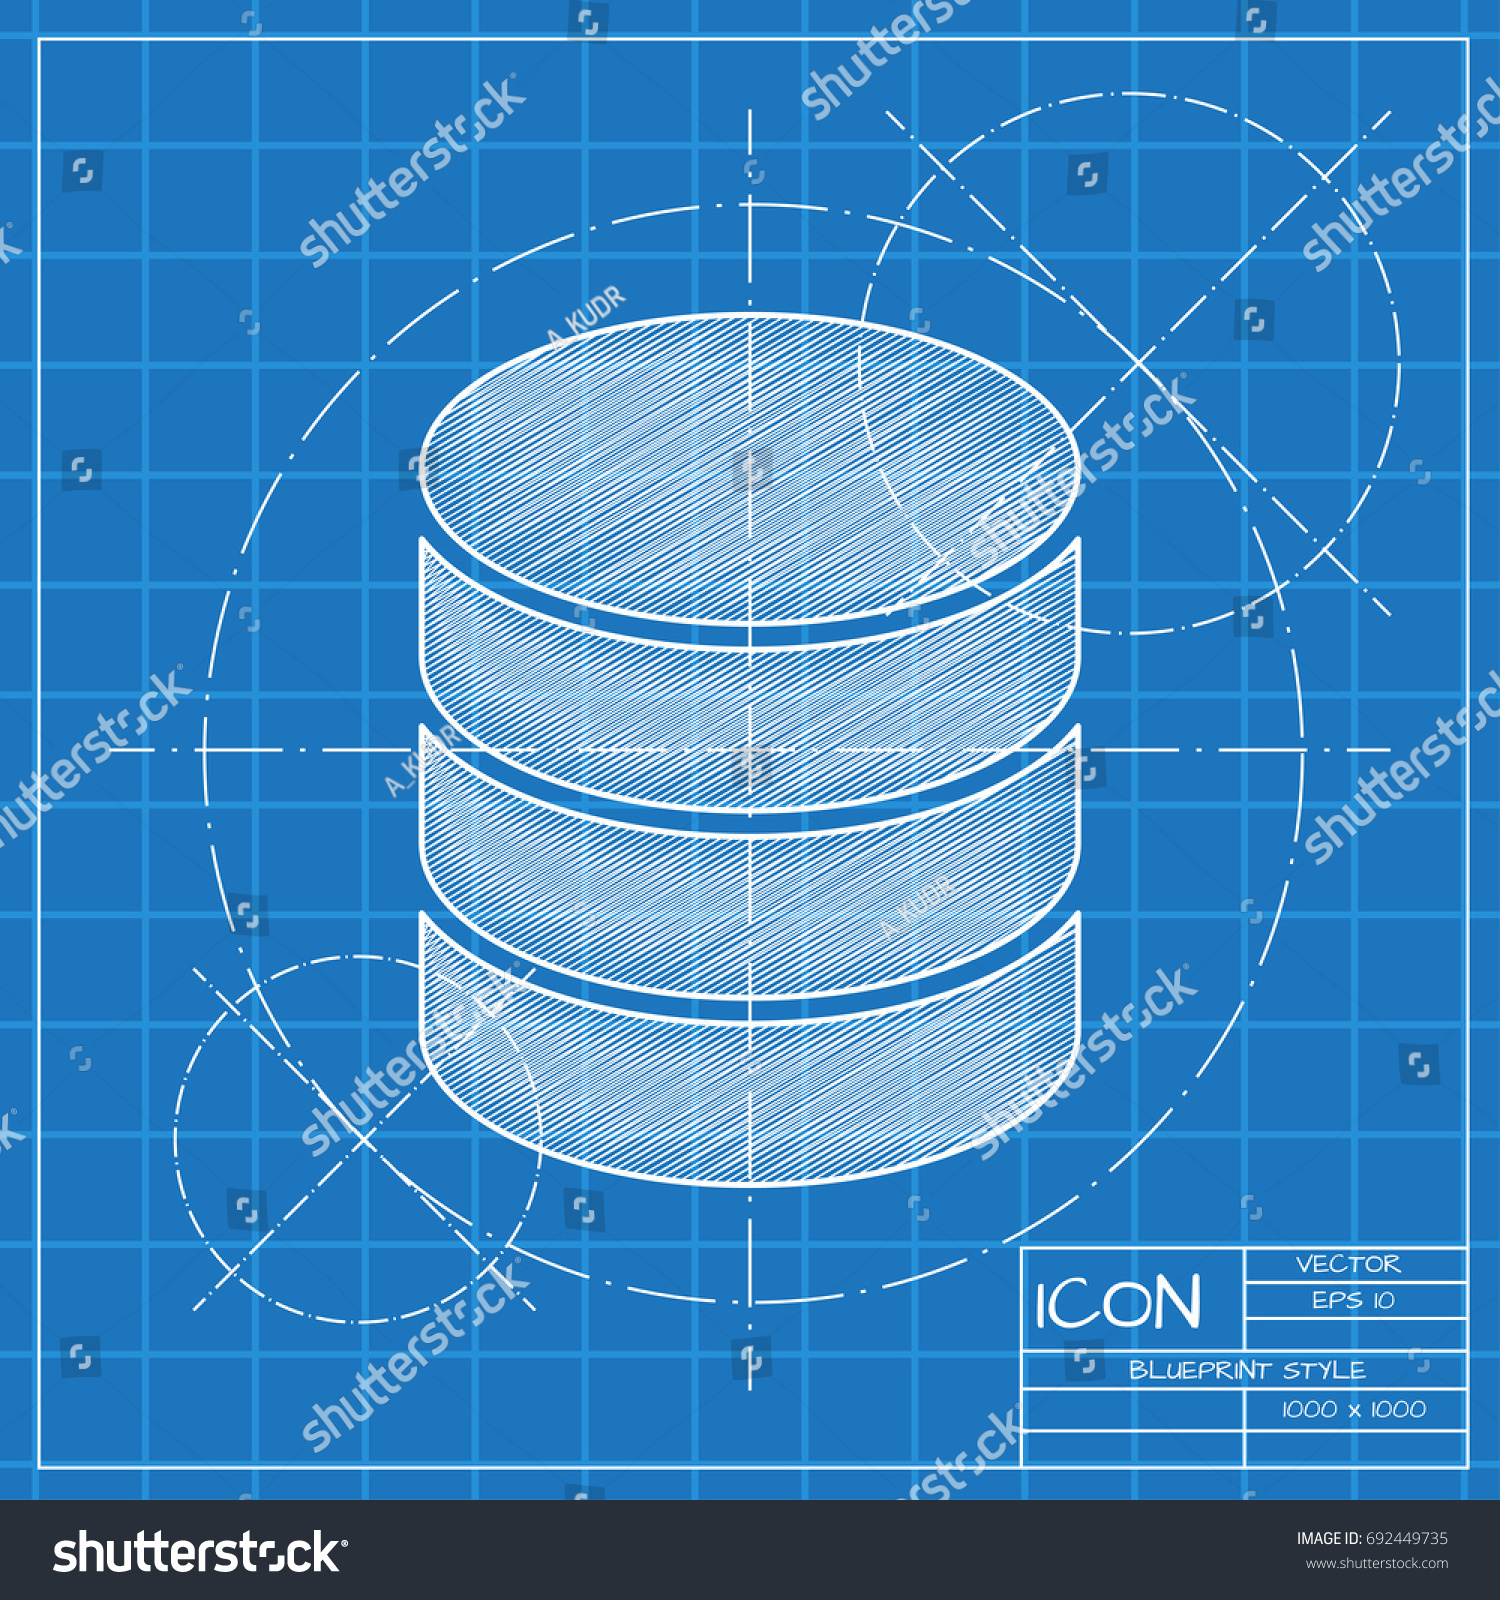 Fantastic blueprint database contemporary electrical and wiring vector blueprint database icon on engineer stock vector 692449735 malvernweather Images